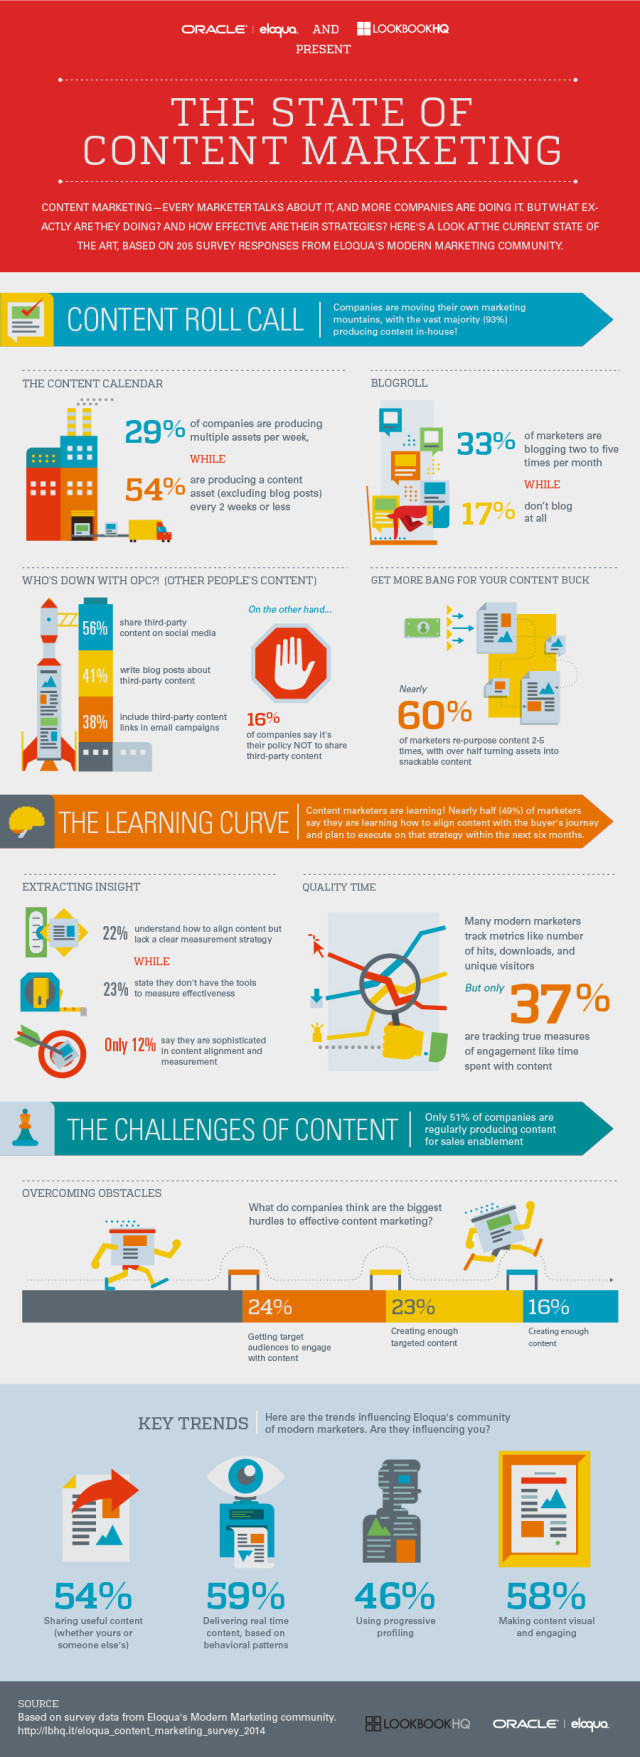 State-of-Content-Marketing-2014_Infographic-FV-640x1757